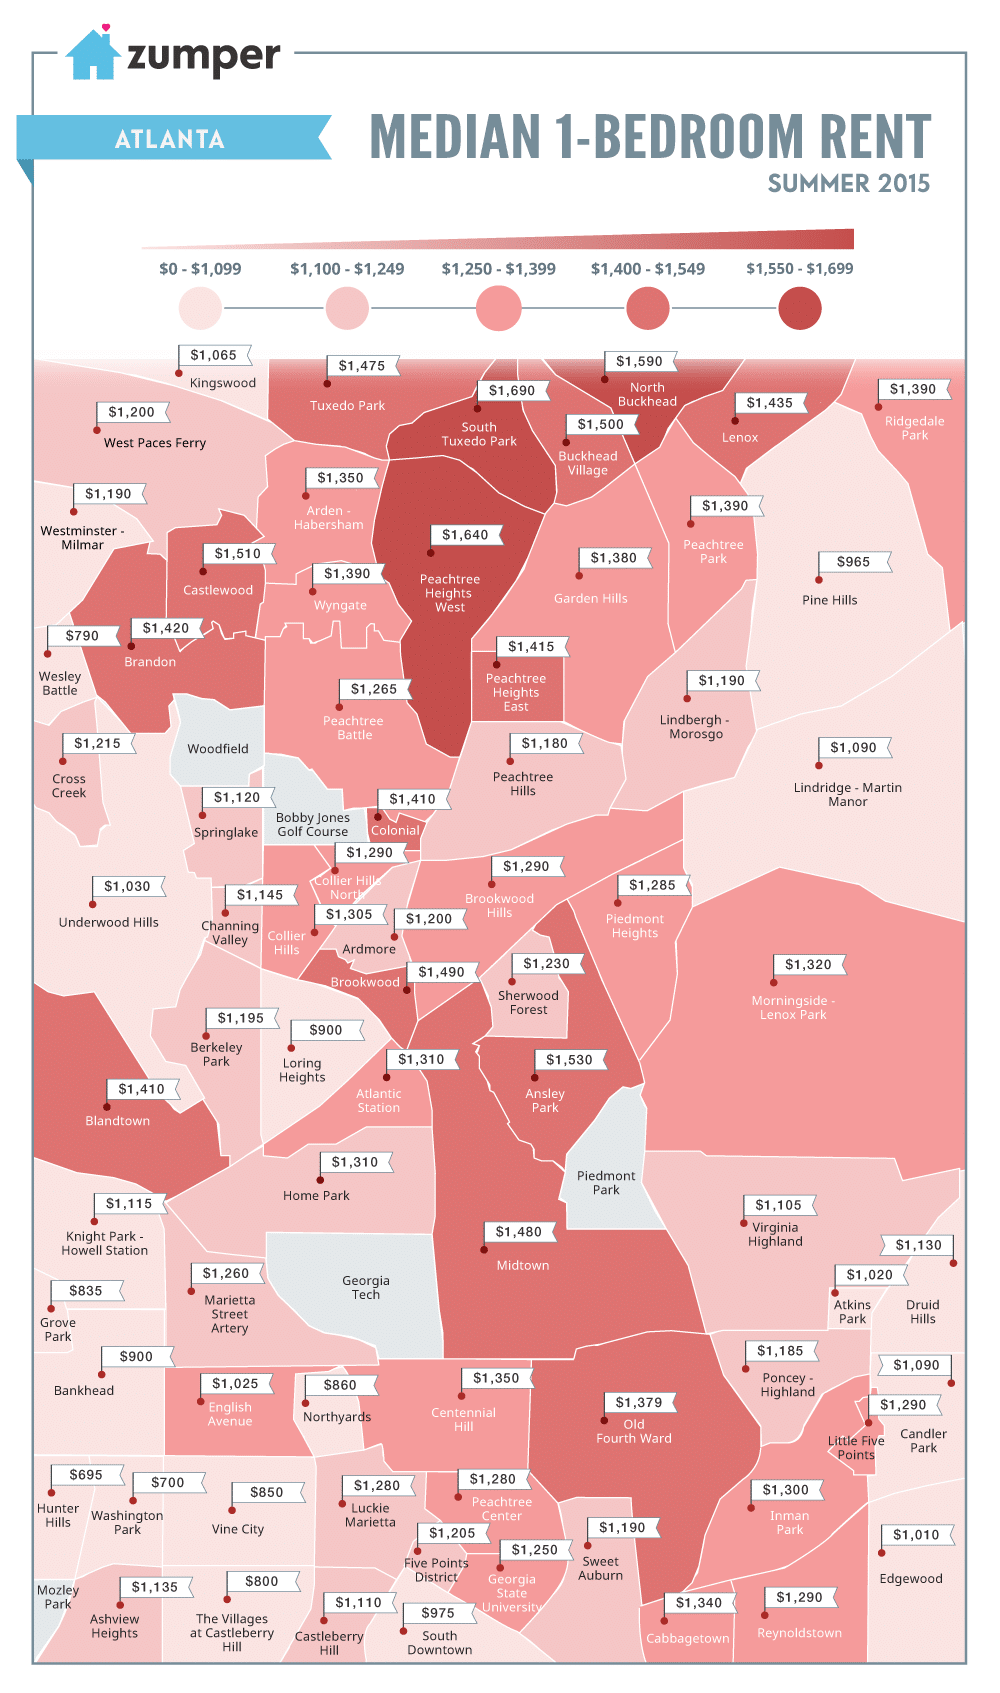 See The Cheapest And Most Expensive Atlanta Neighborhoods To Rent